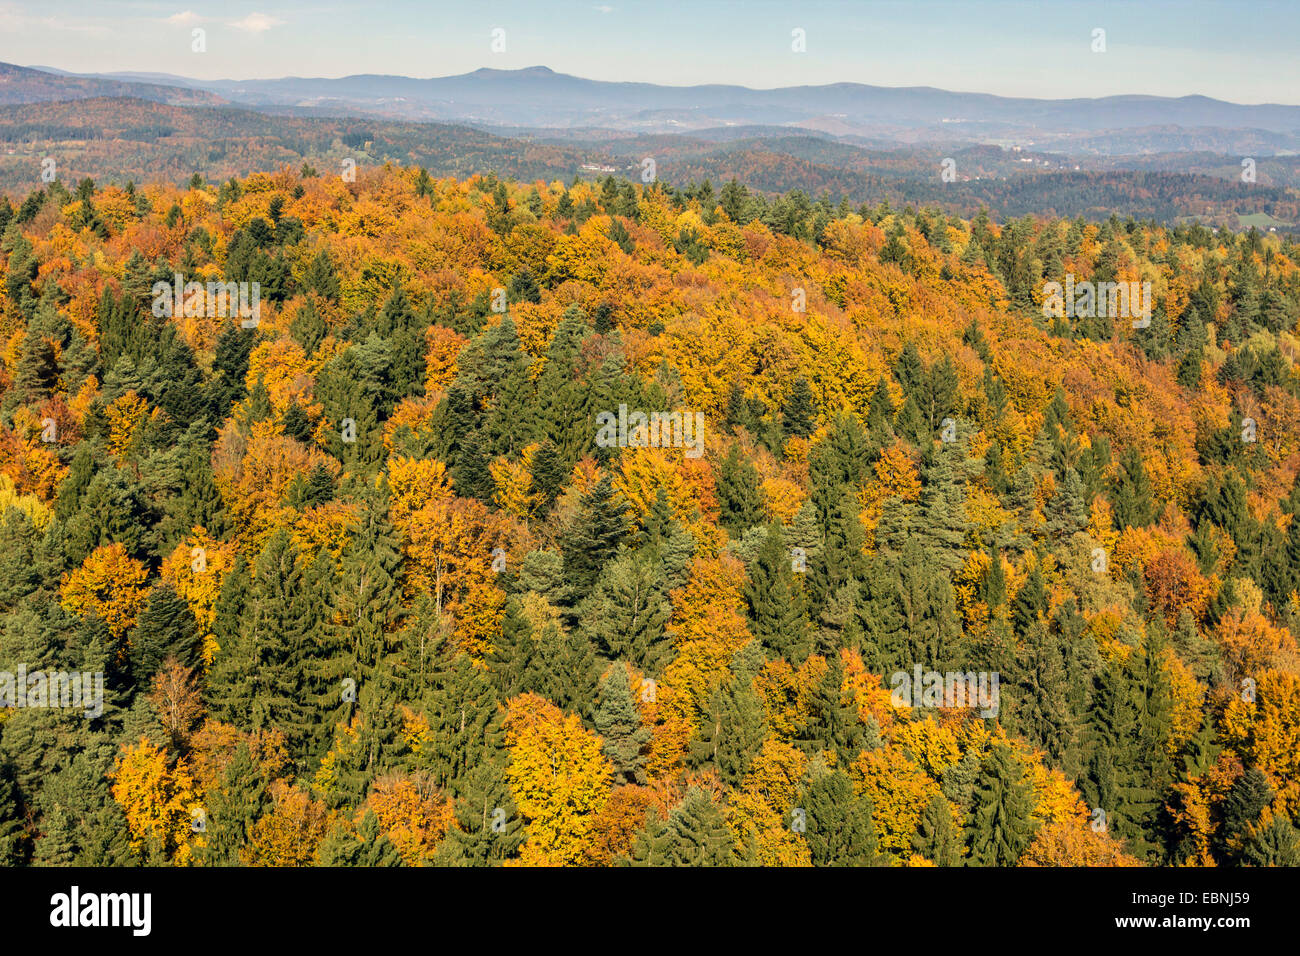 aerial view to spruce and beech forest in autumn, Germany, Bavaria, Bavarian Forest National Park - Stock Image